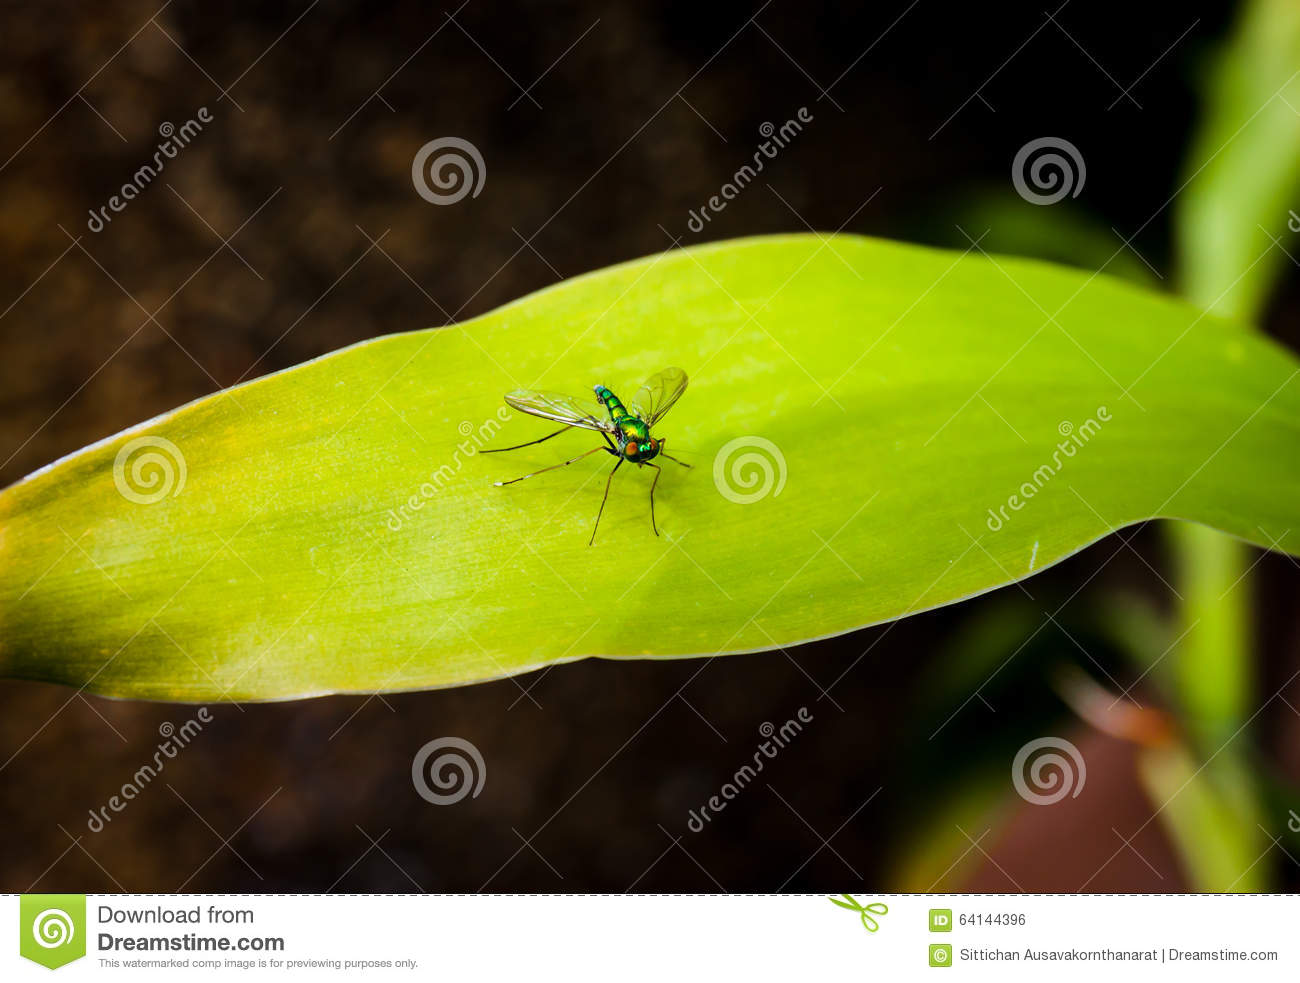 Longlegged fly on a green leaf